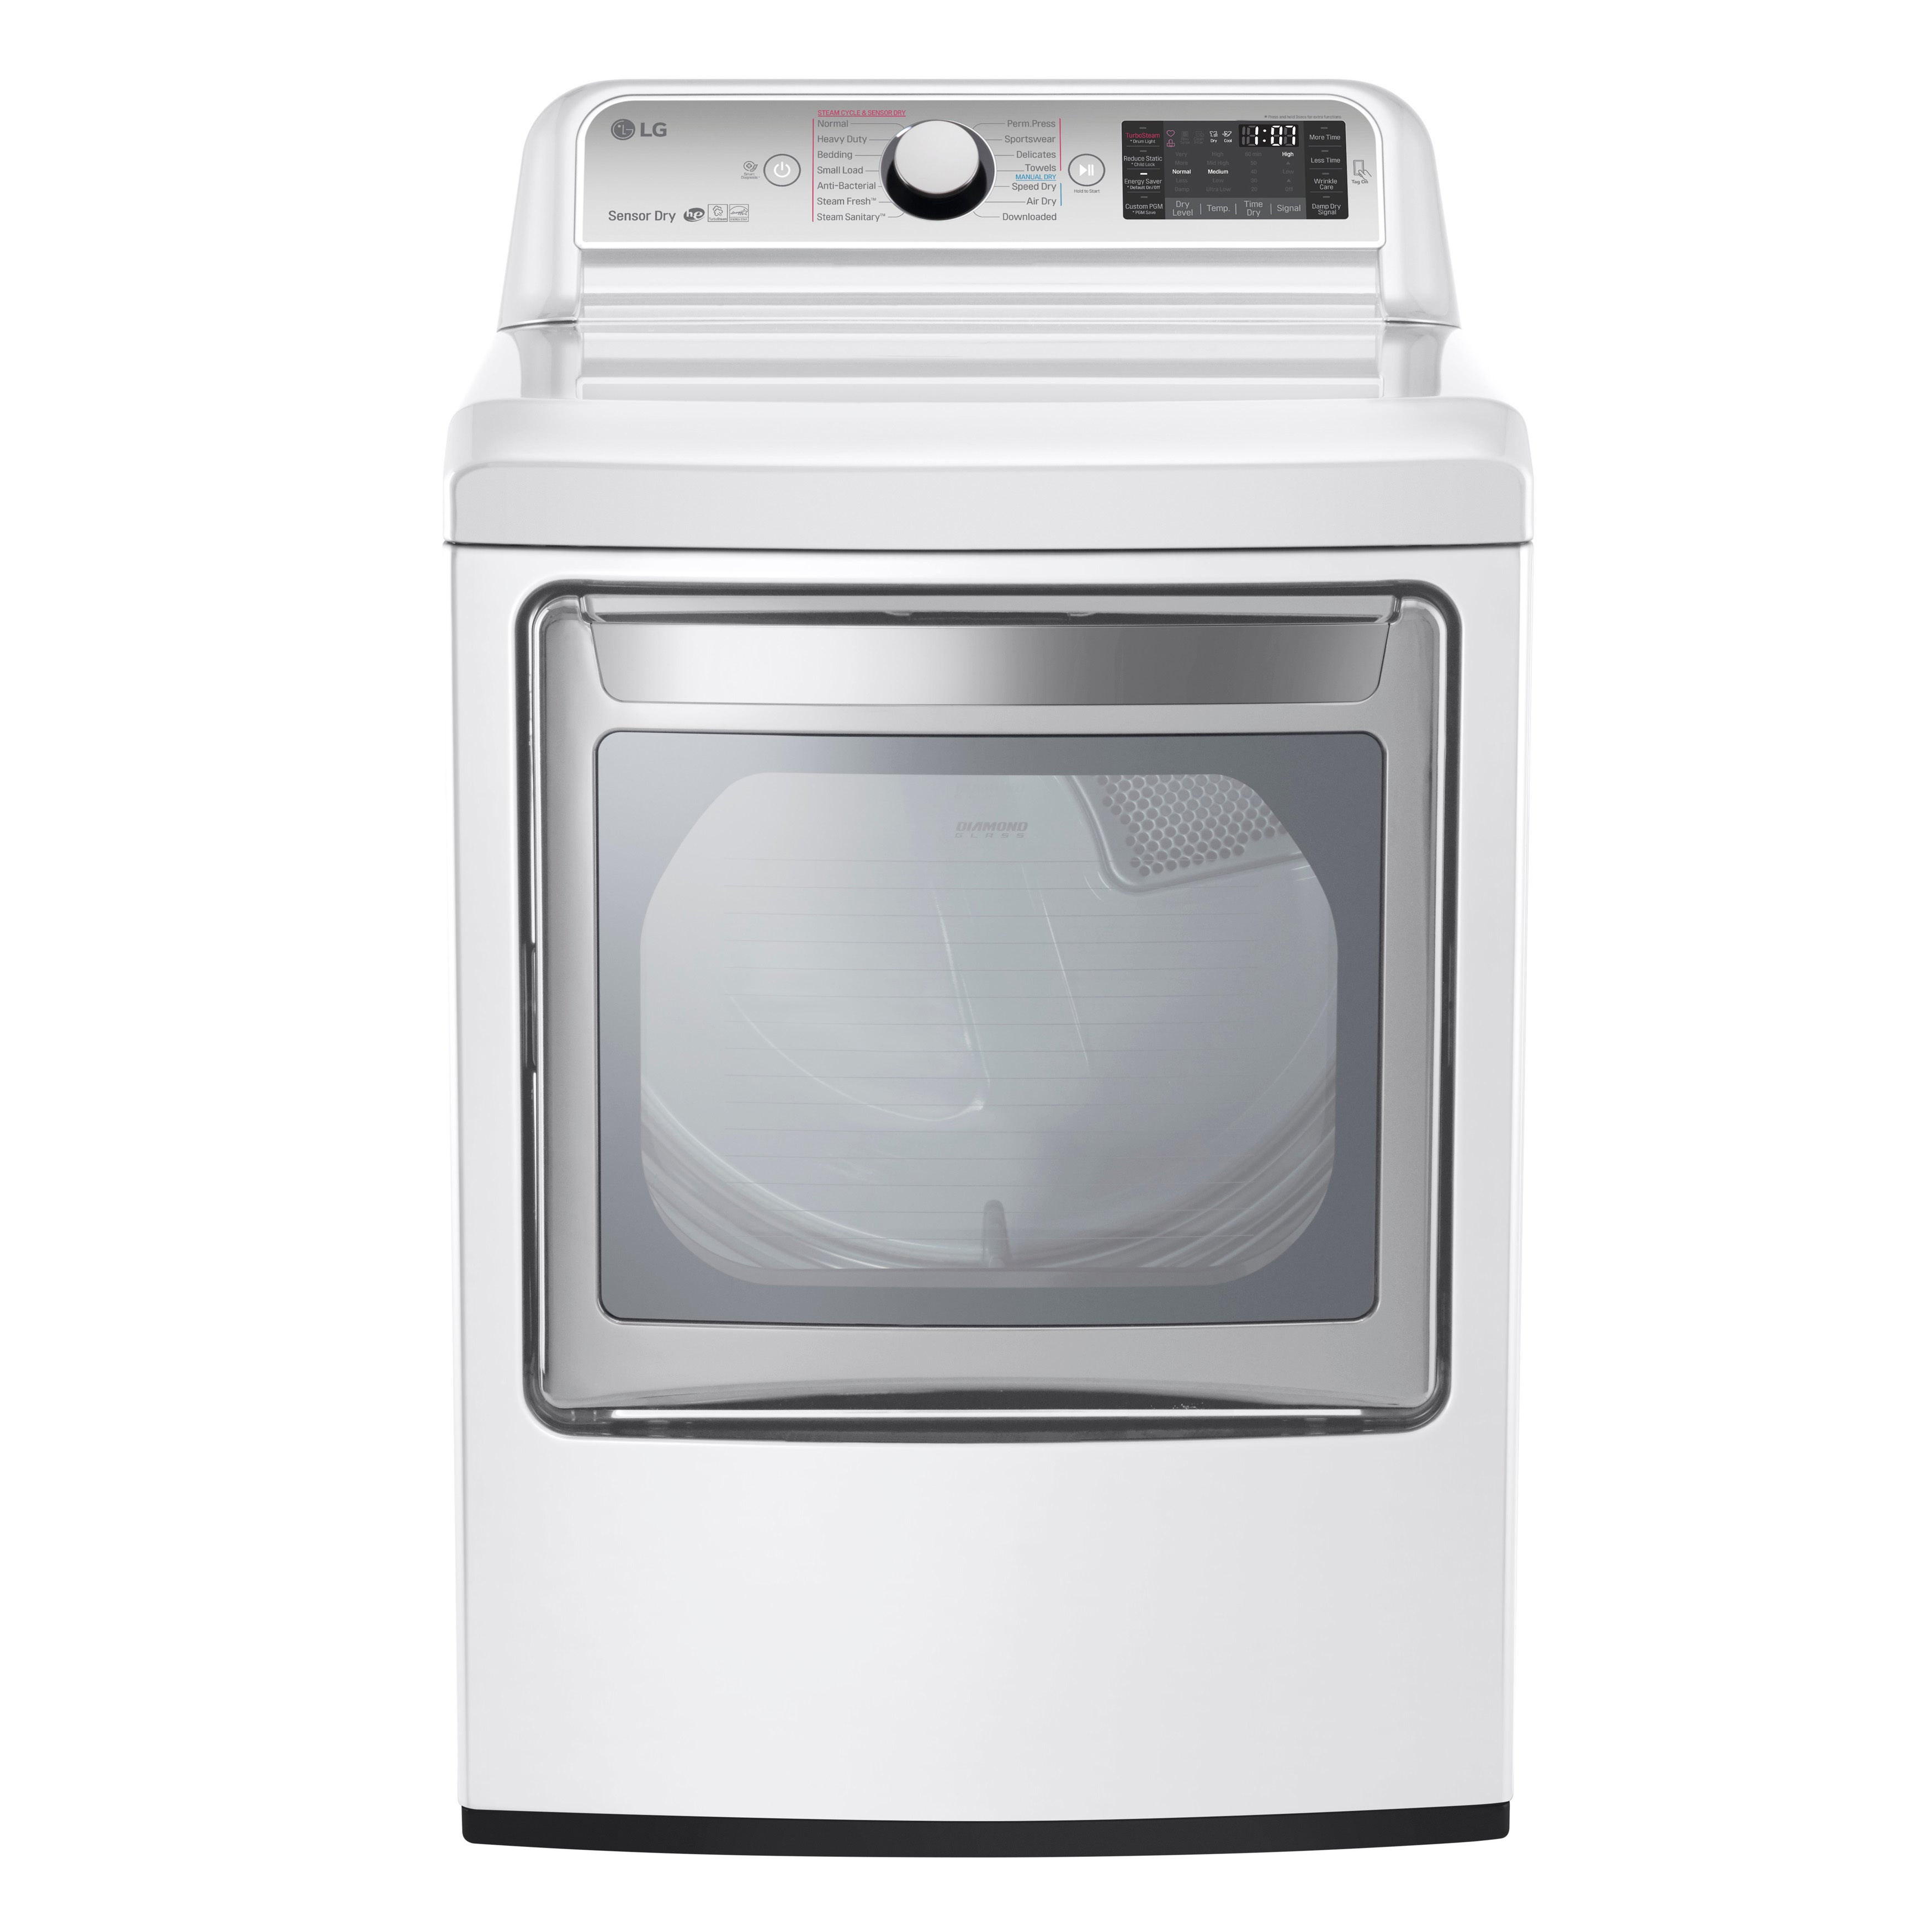 LG DLEX7600WE White Stainless Steel 27-inch 7.3-cubic-foo...